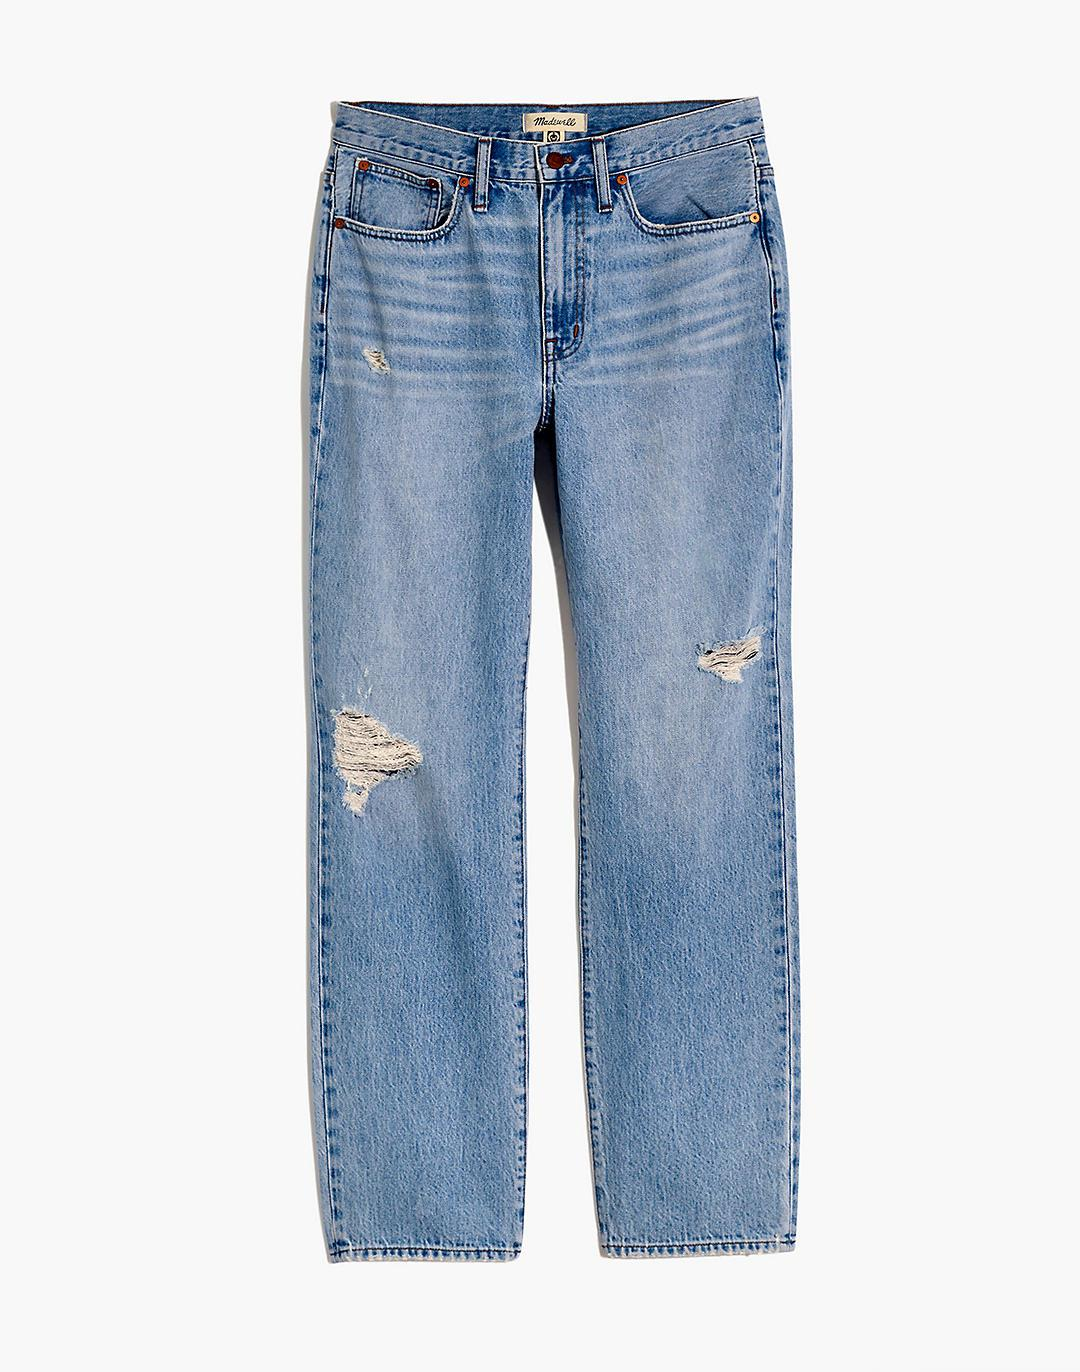 Plus Relaxed Jeans in Cresthaven Wash: Ripped Edition 4